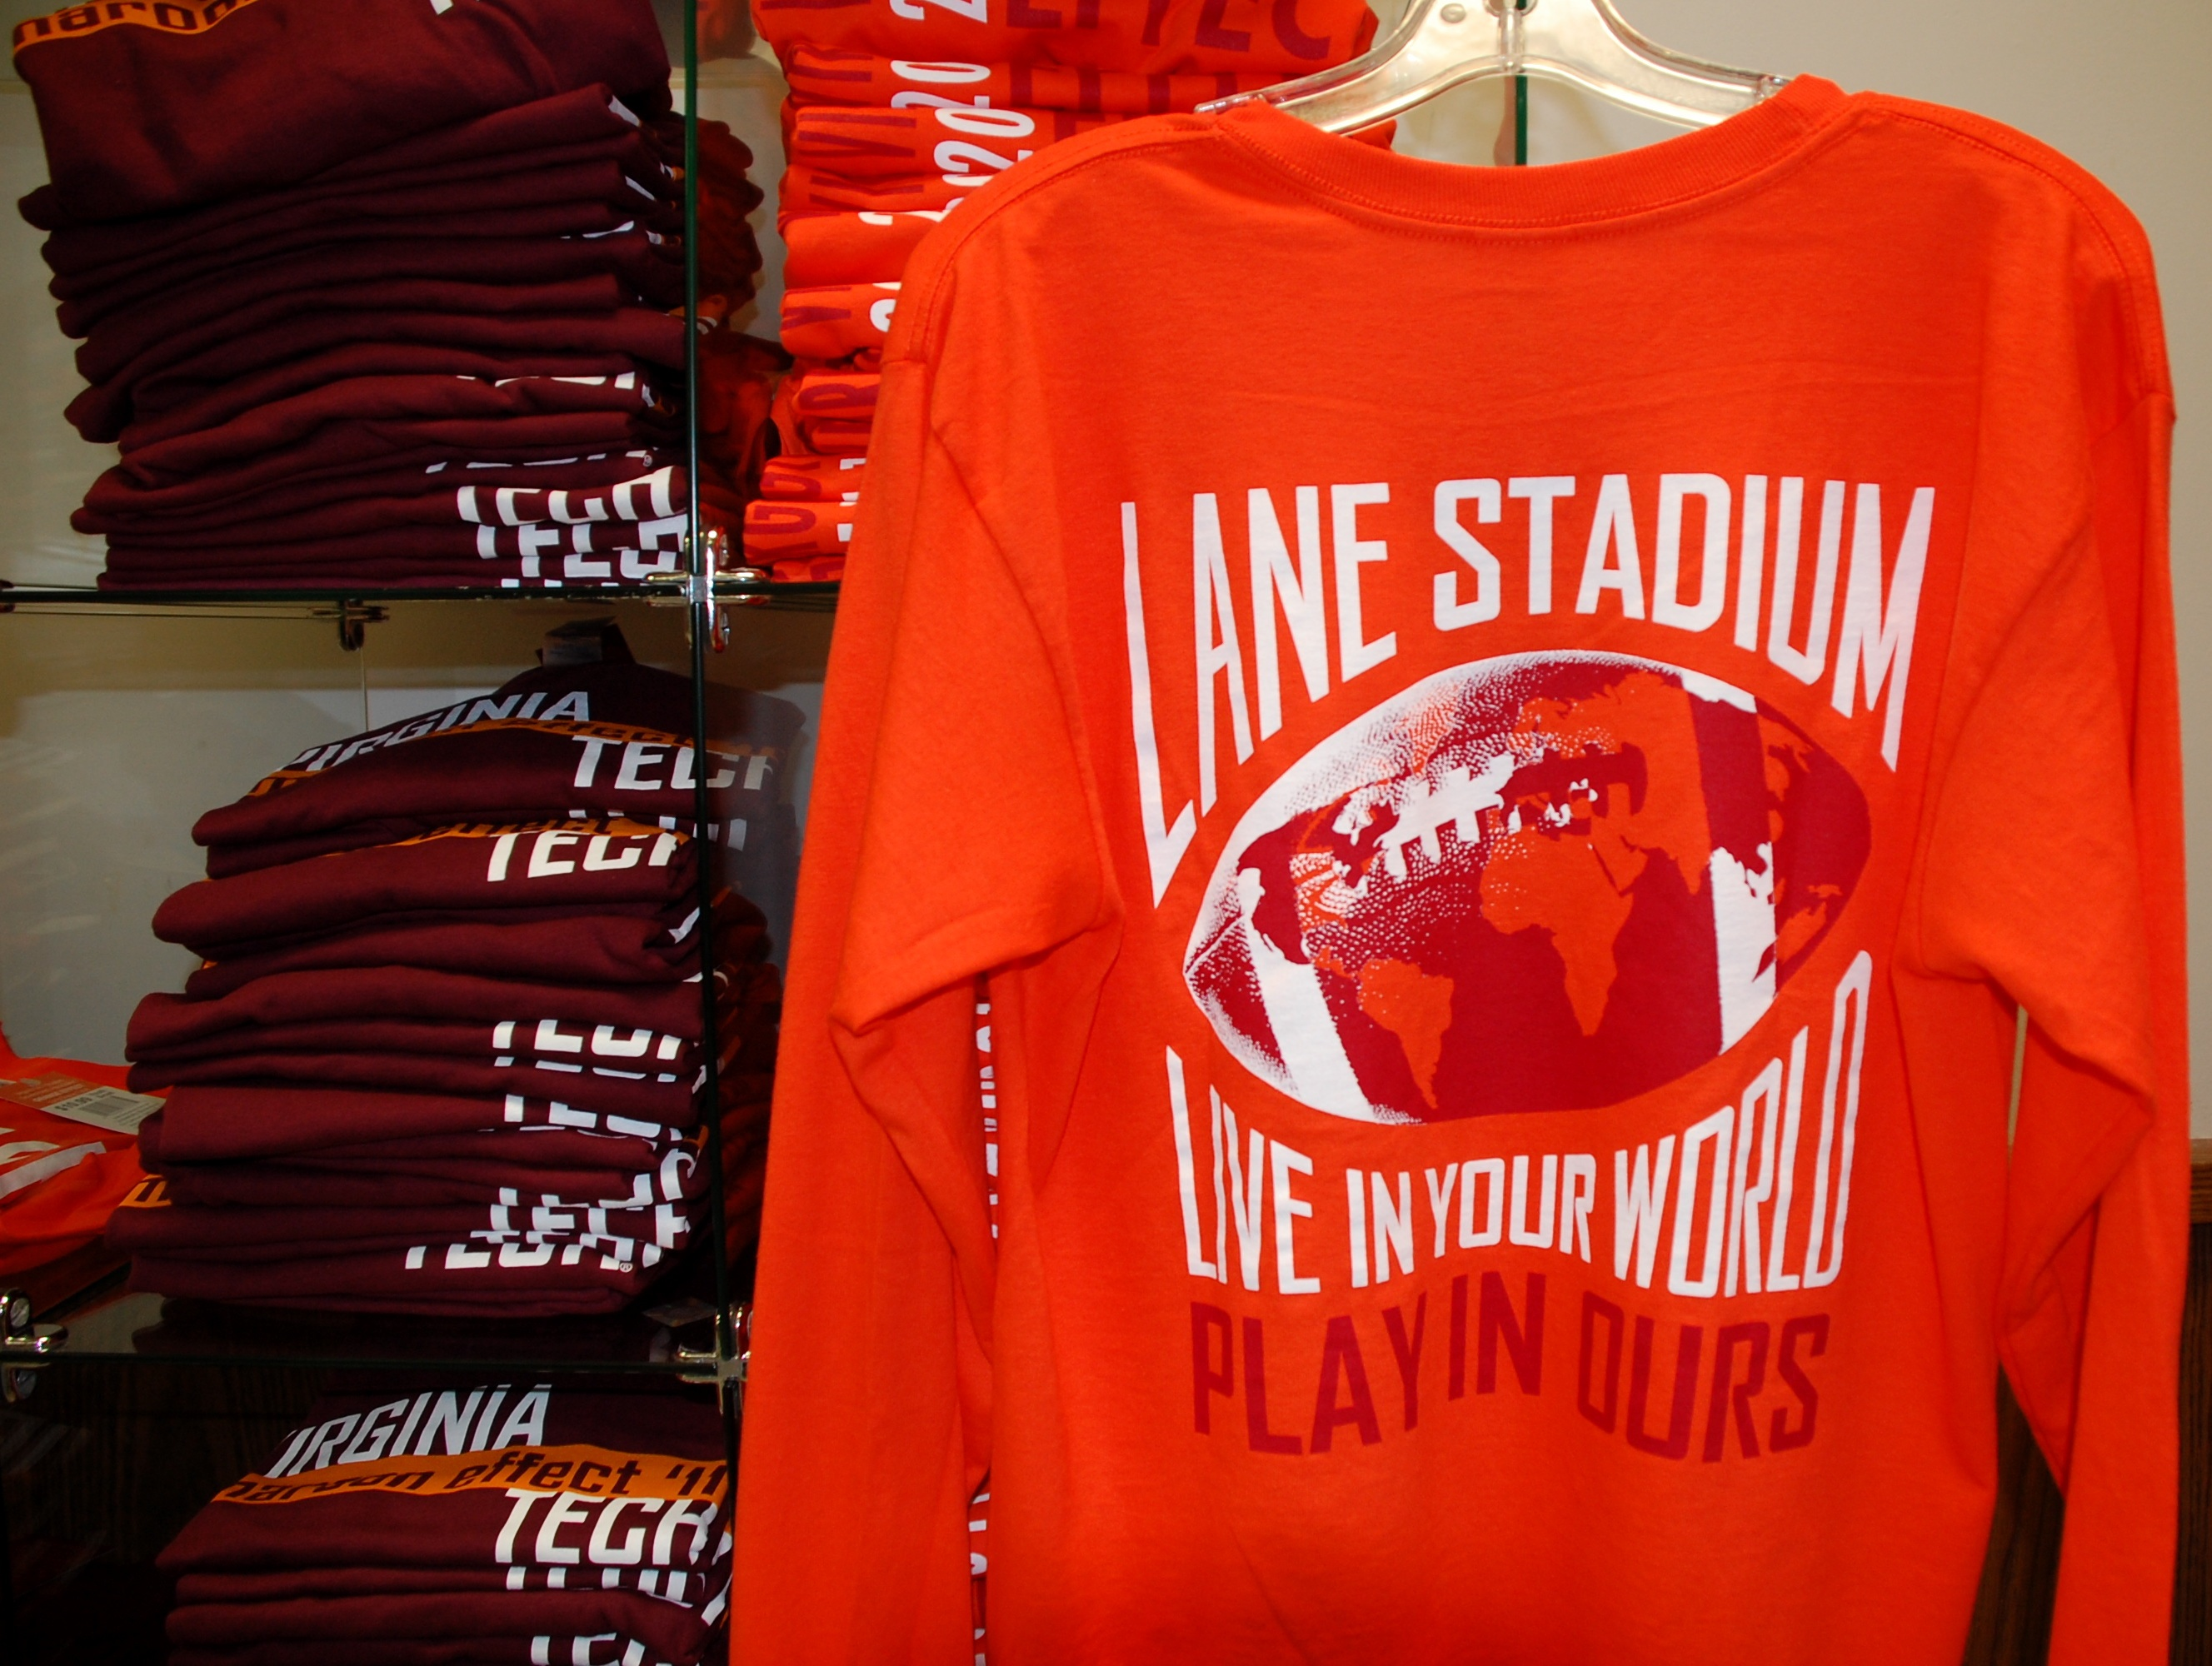 Maroon and Orange Effect shirts on display at Dietrick Convenience Store